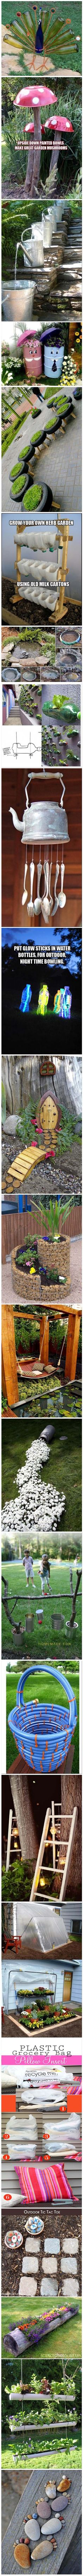 +20 Incredible Recycle Ideas for Gardeners